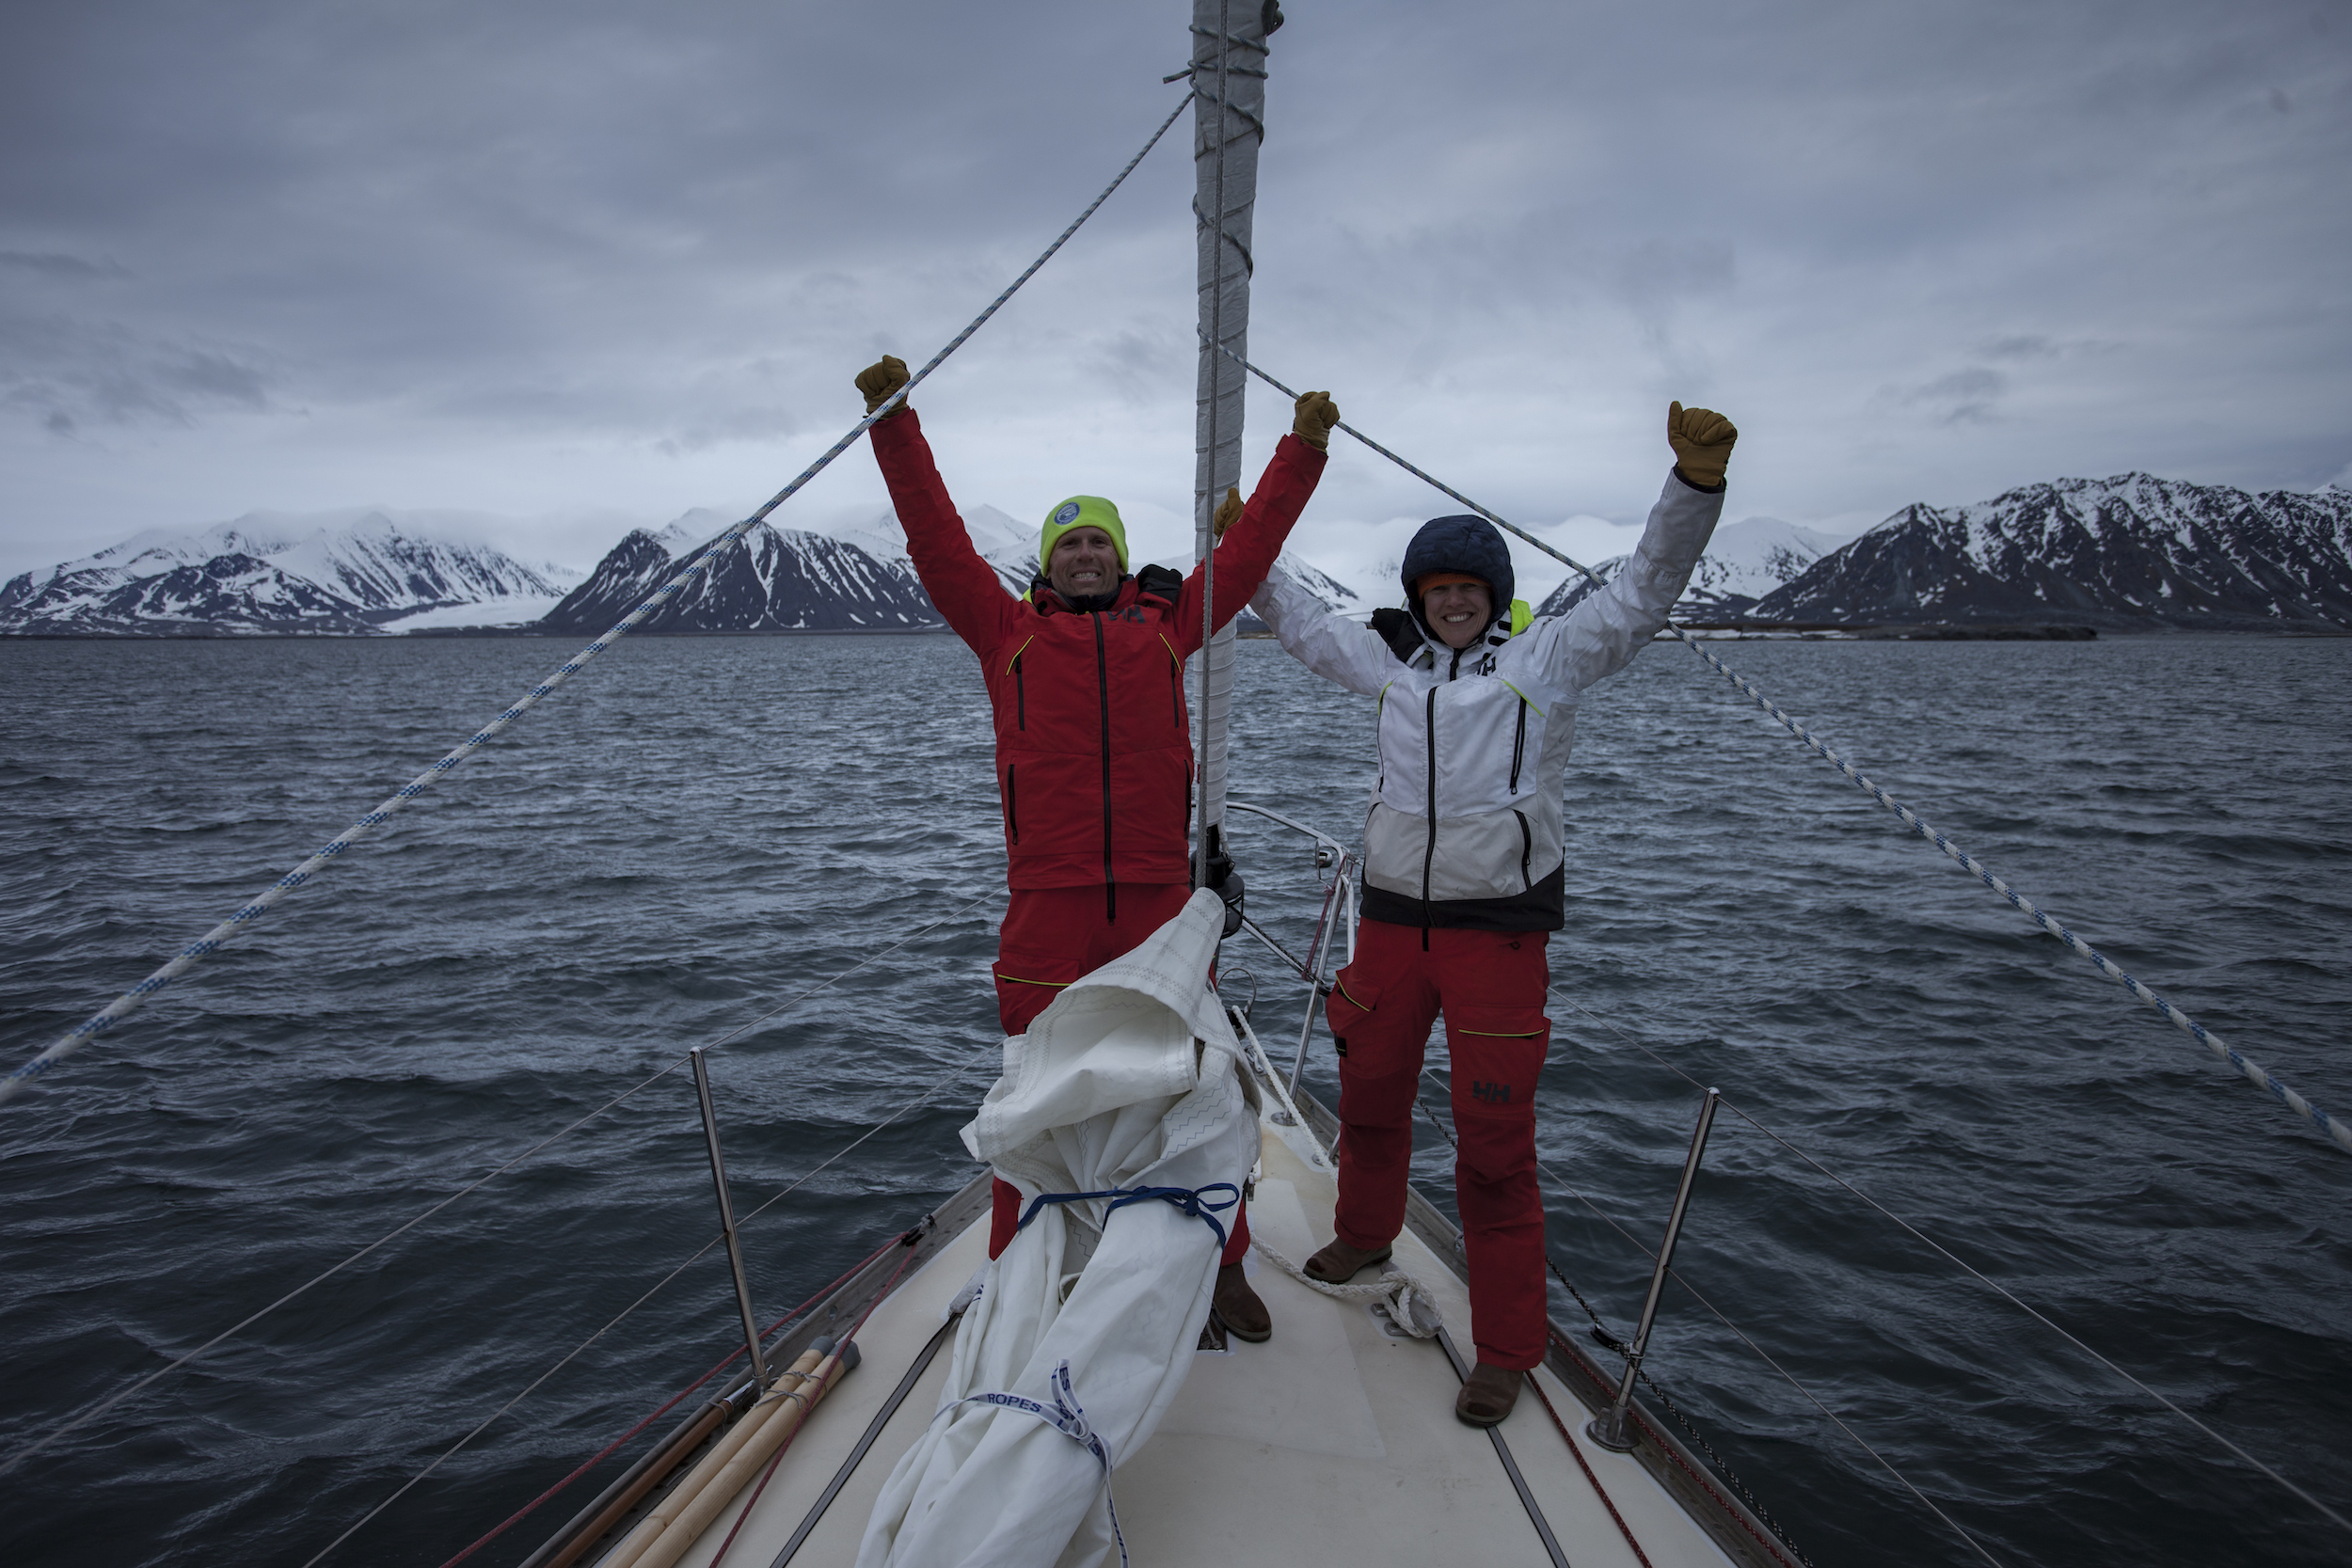 Anchor down at 77º North! We made it to SPITSBERGEN!